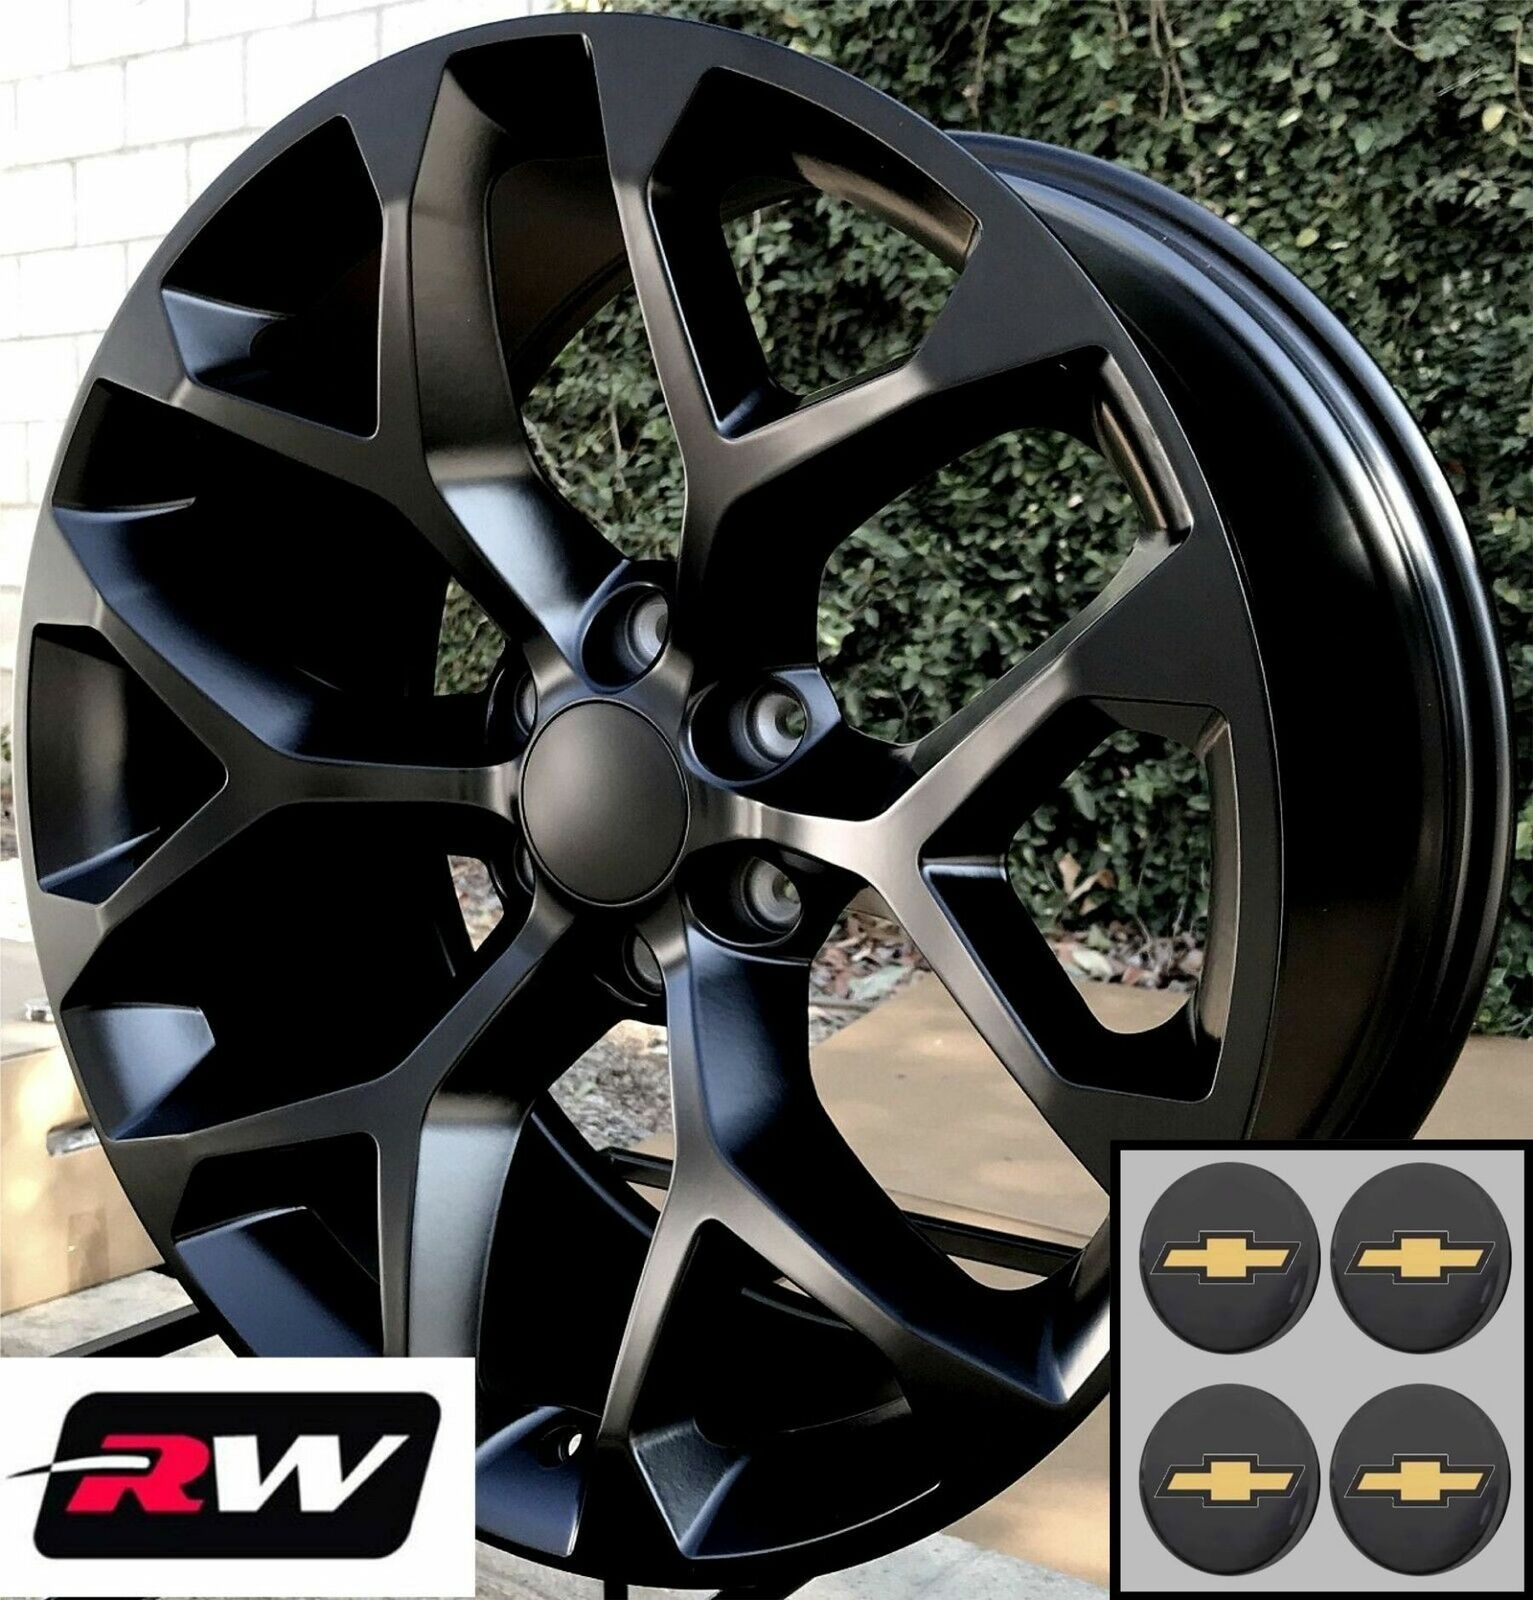 Pin On Chevy Silverado Ss Rims